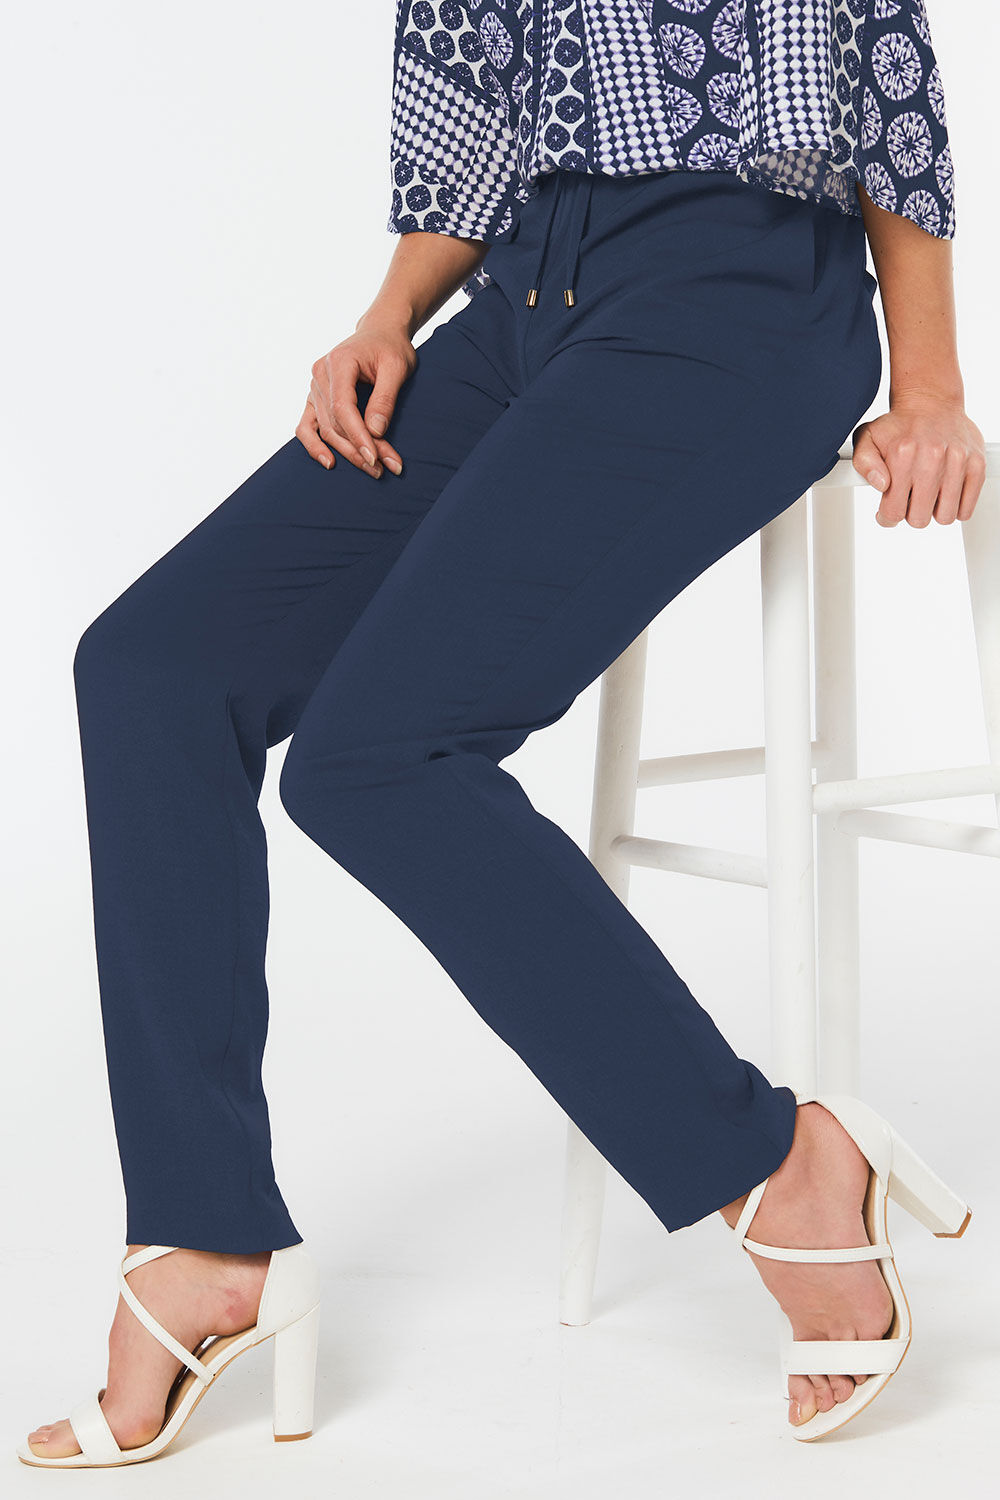 Black Leisure Trousers Size 50 S Inside Leg 28 Excellent Condition Catalogues Will Be Sent Upon Request Men's Clothing